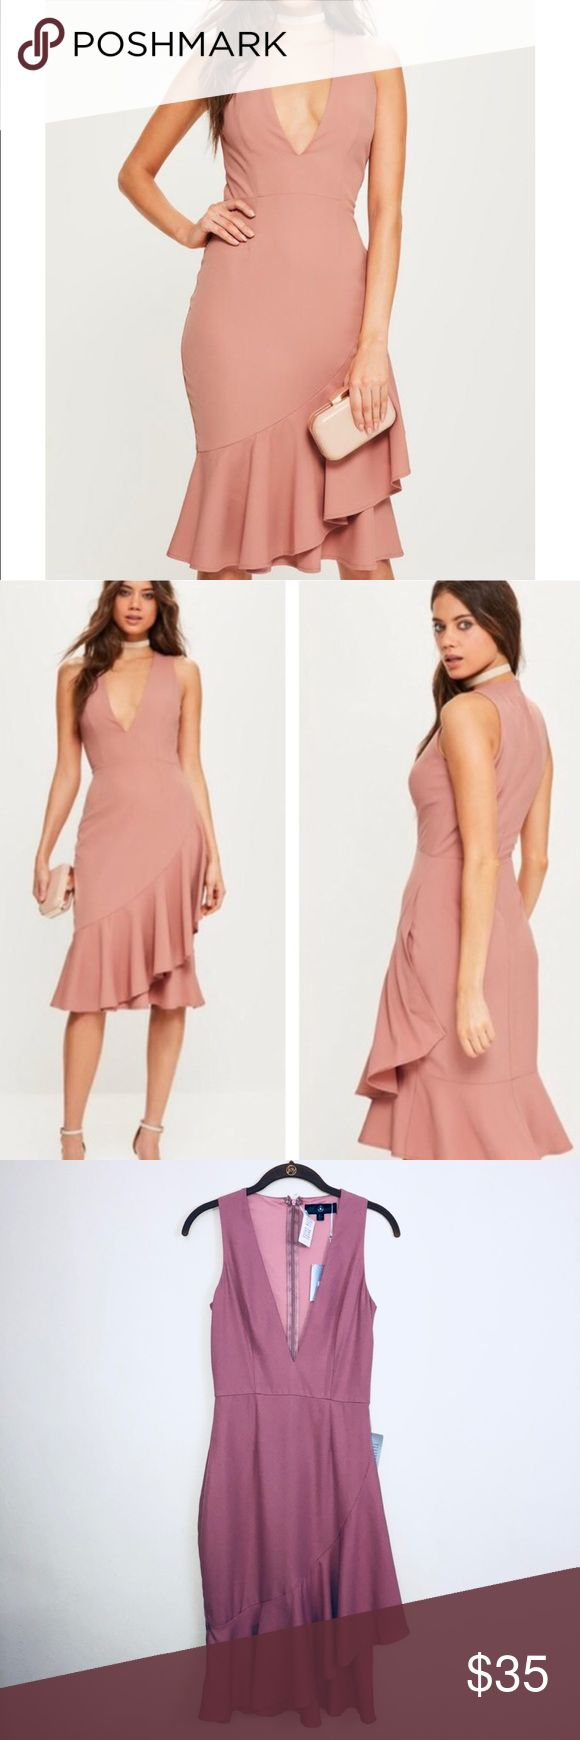 """Missguided Rose Crepe Sleeveless Ruffle Midi Dress Rose Crepe Sleeveless Ruffle Hem Midi Dress from Missguided. Size 4. New with tags. Polyester. Hand Wash Seperately. Perfect dress for a special occasion such as a wedding, bridal shower, baby shower, graduation, or homecoming.   Measurements  16"""" across chest  44"""" long from highest point Missguided Dresses Midi #graduationdresses"""